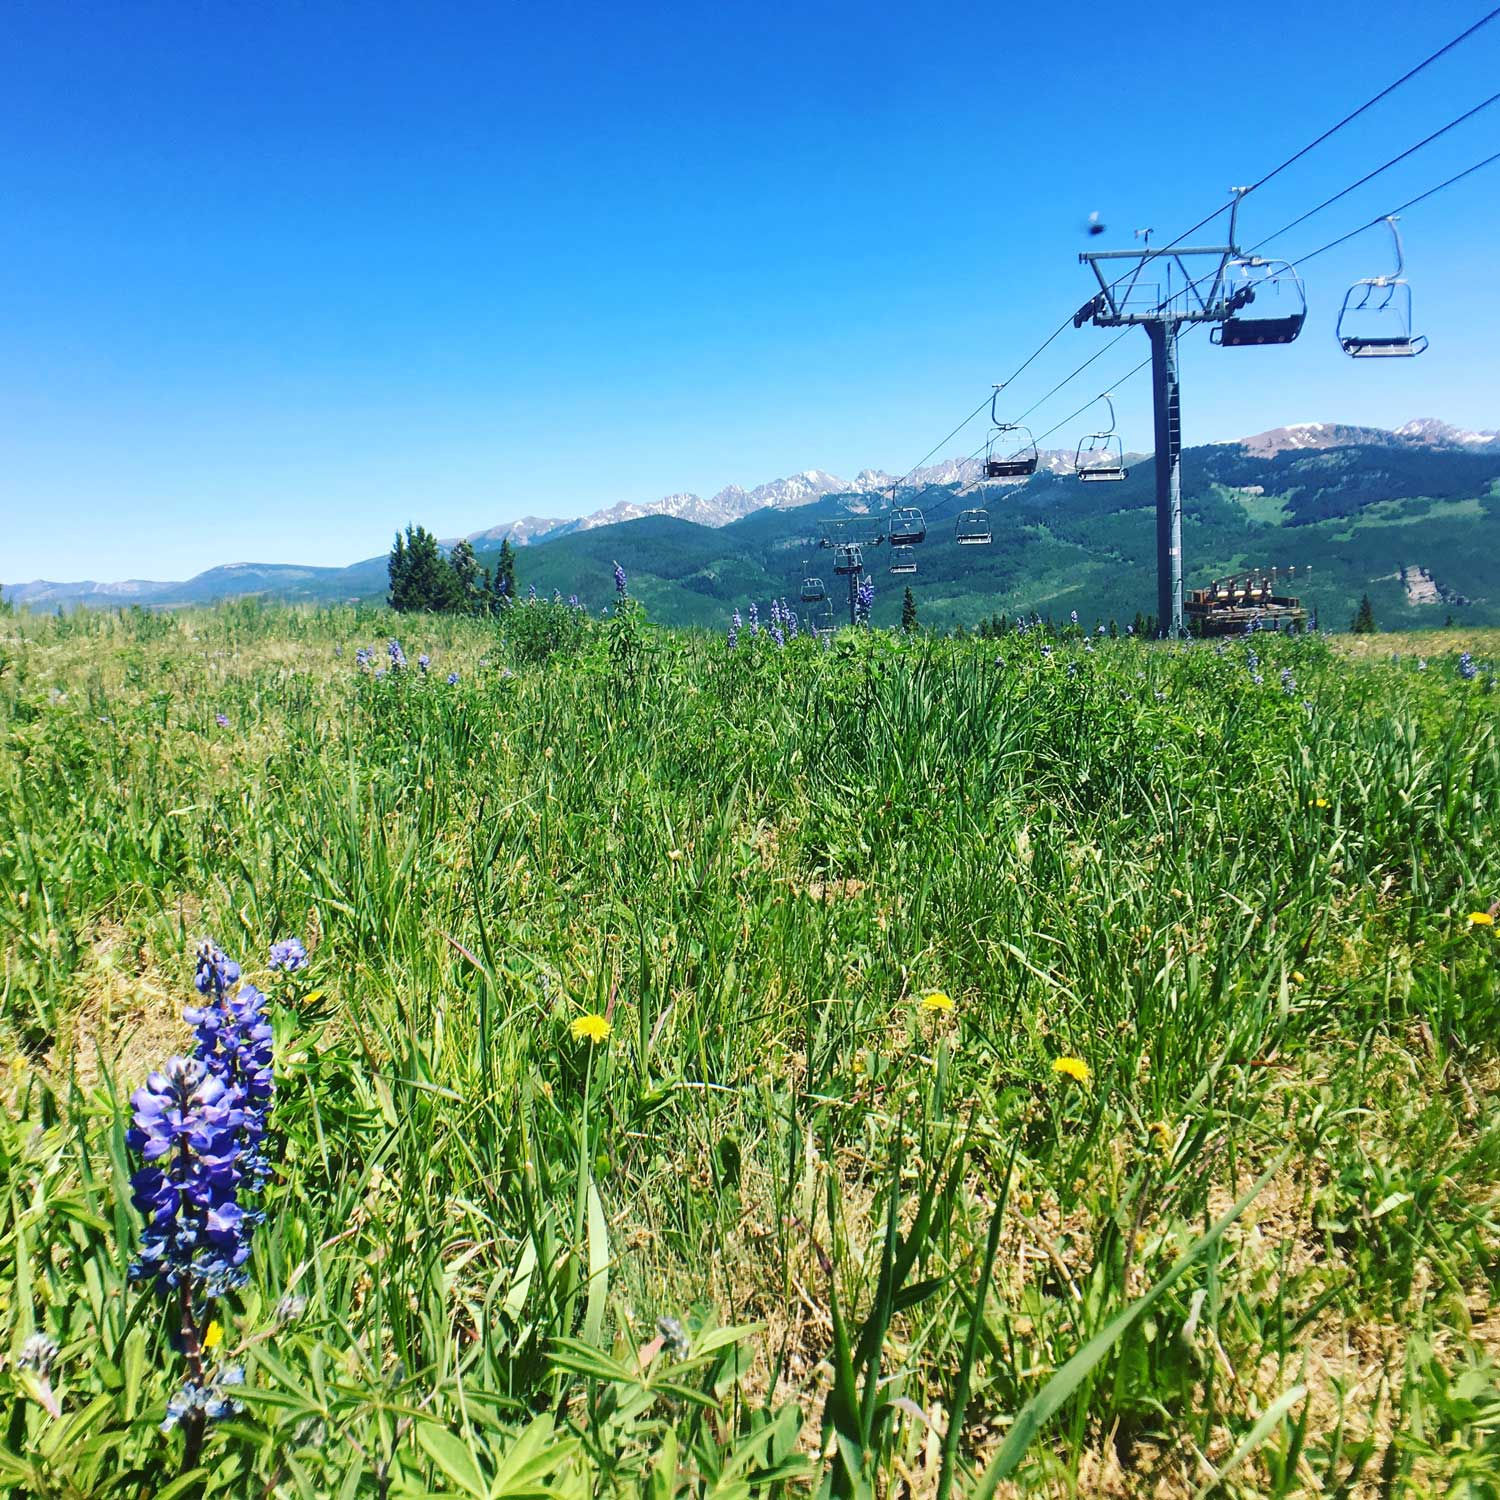 Your Vail summer family vacation really needs to include a ride up the gondola for the views!